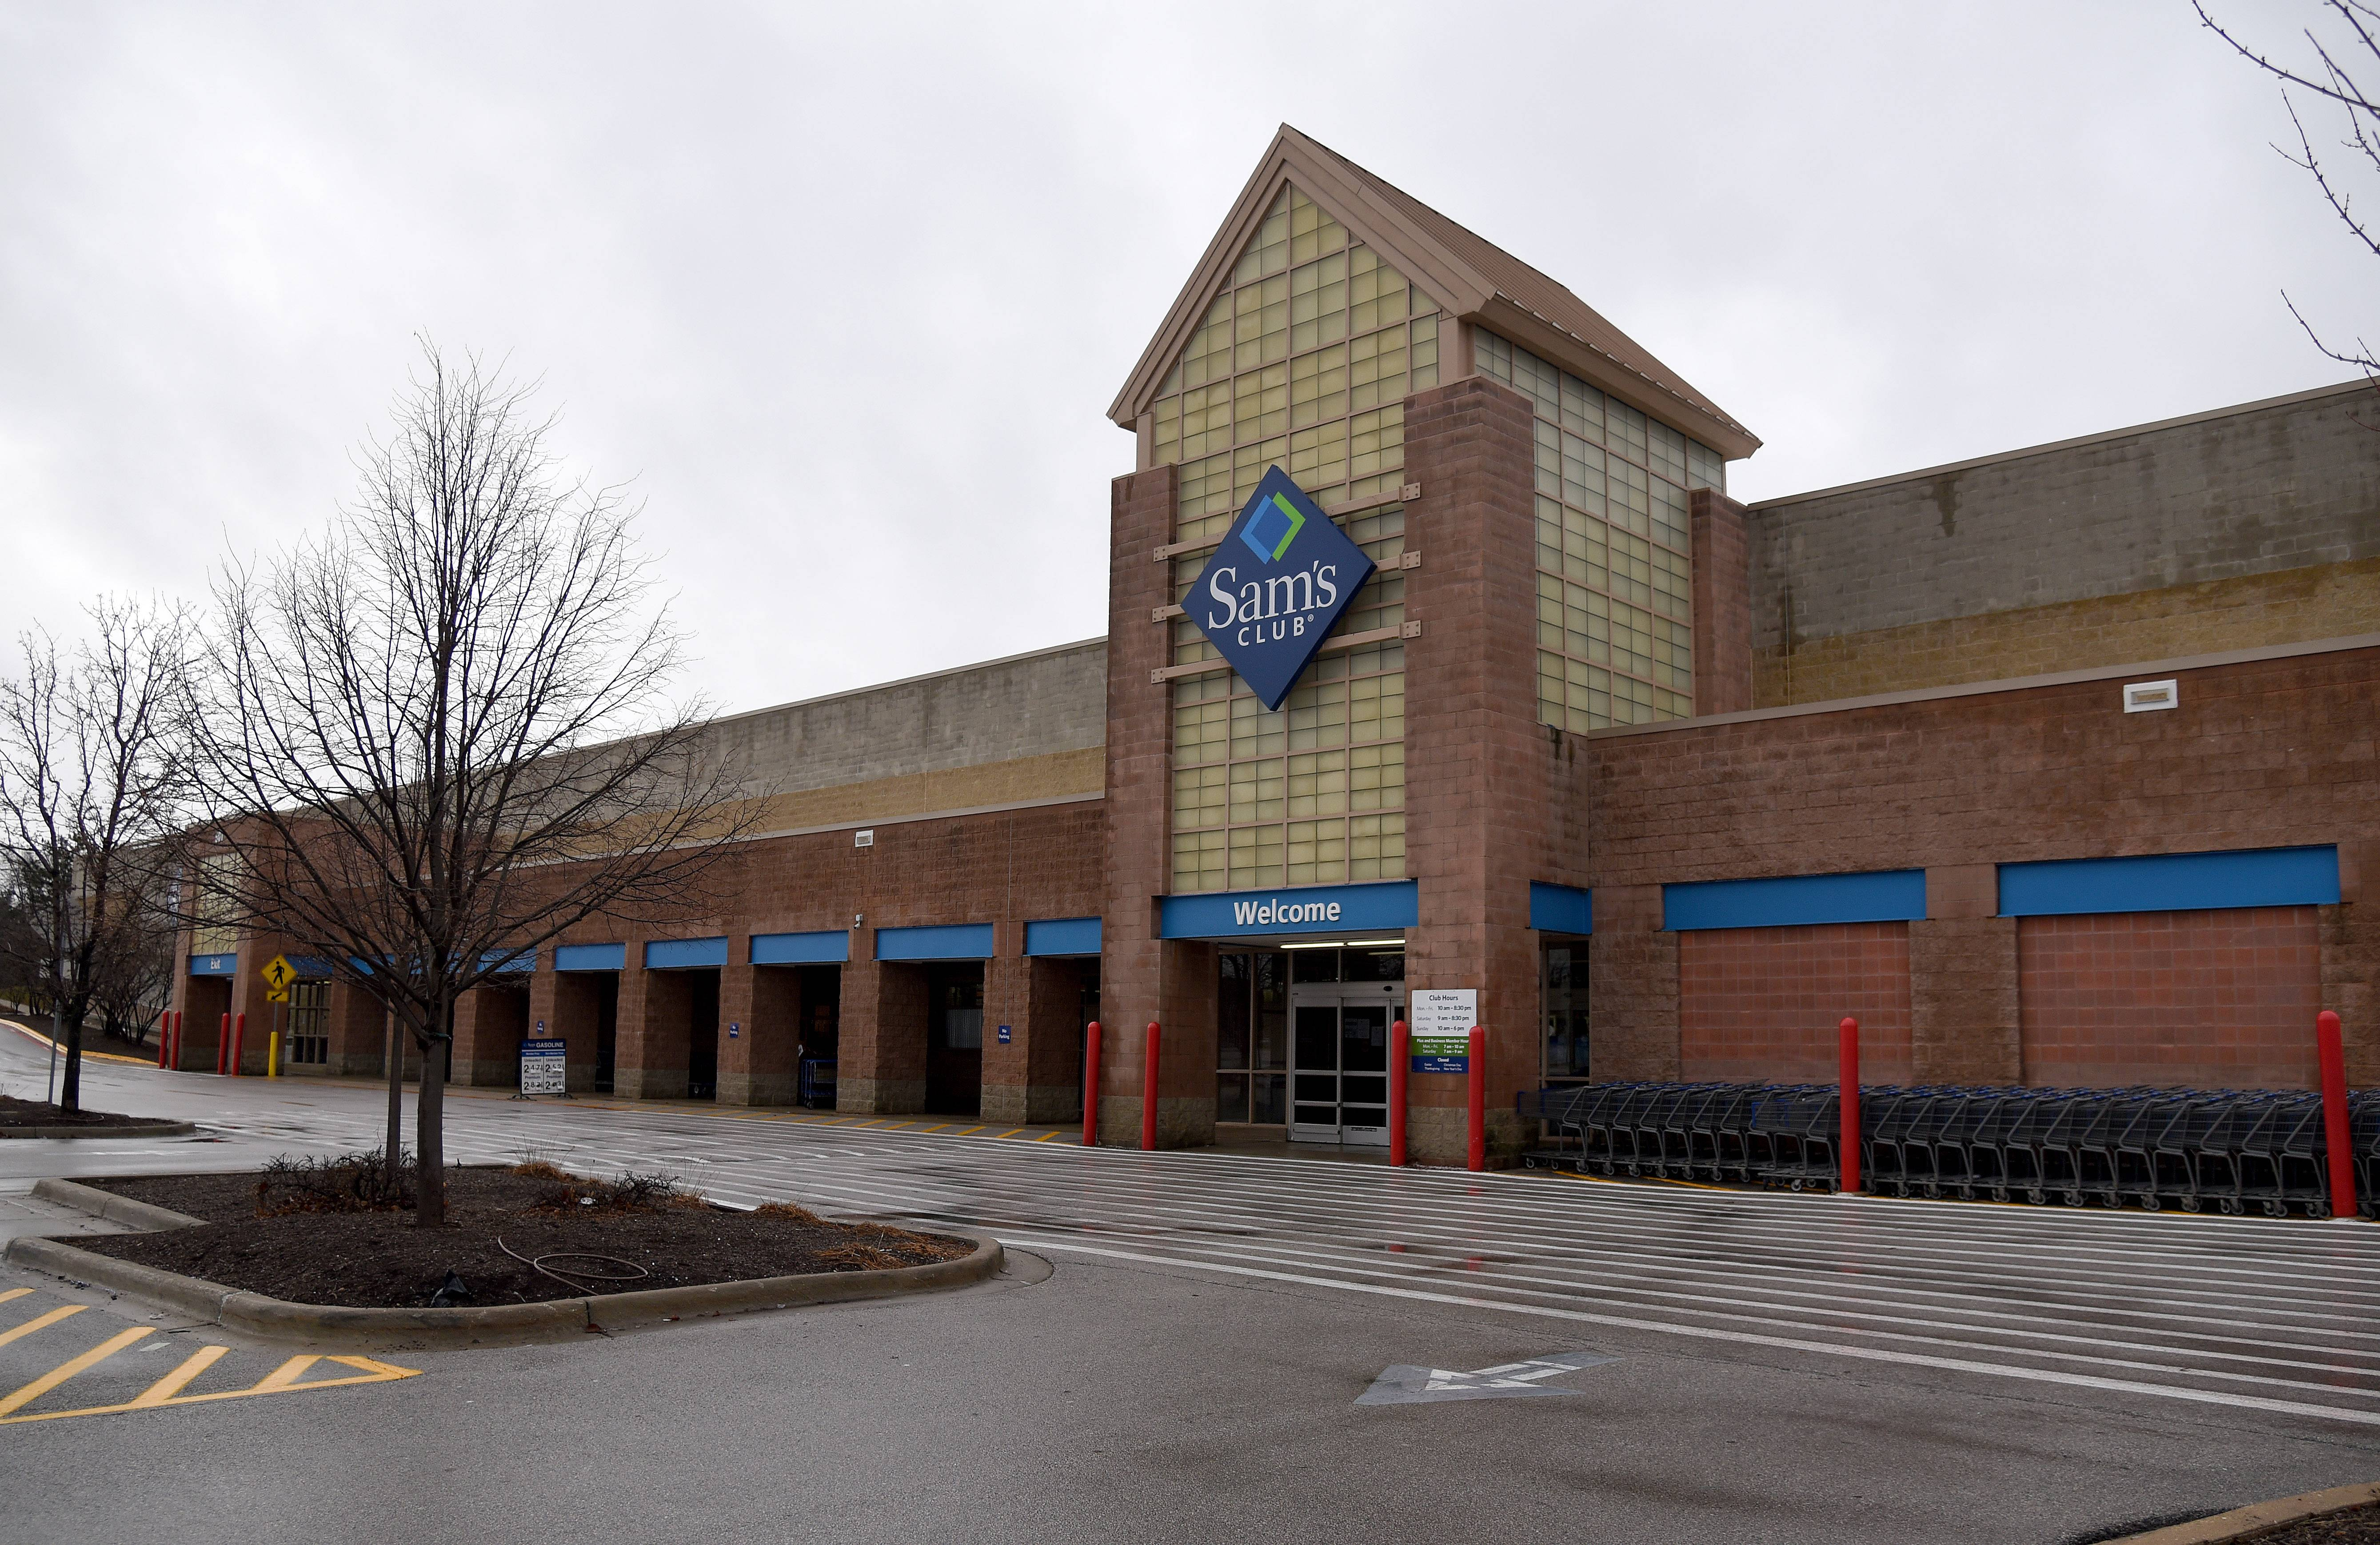 The Sam's Club in Batavia is closing at the end of the month. Batavia officials are trying to figure out what to do about the loss of sales and liquor taxes, as well as utility fees.